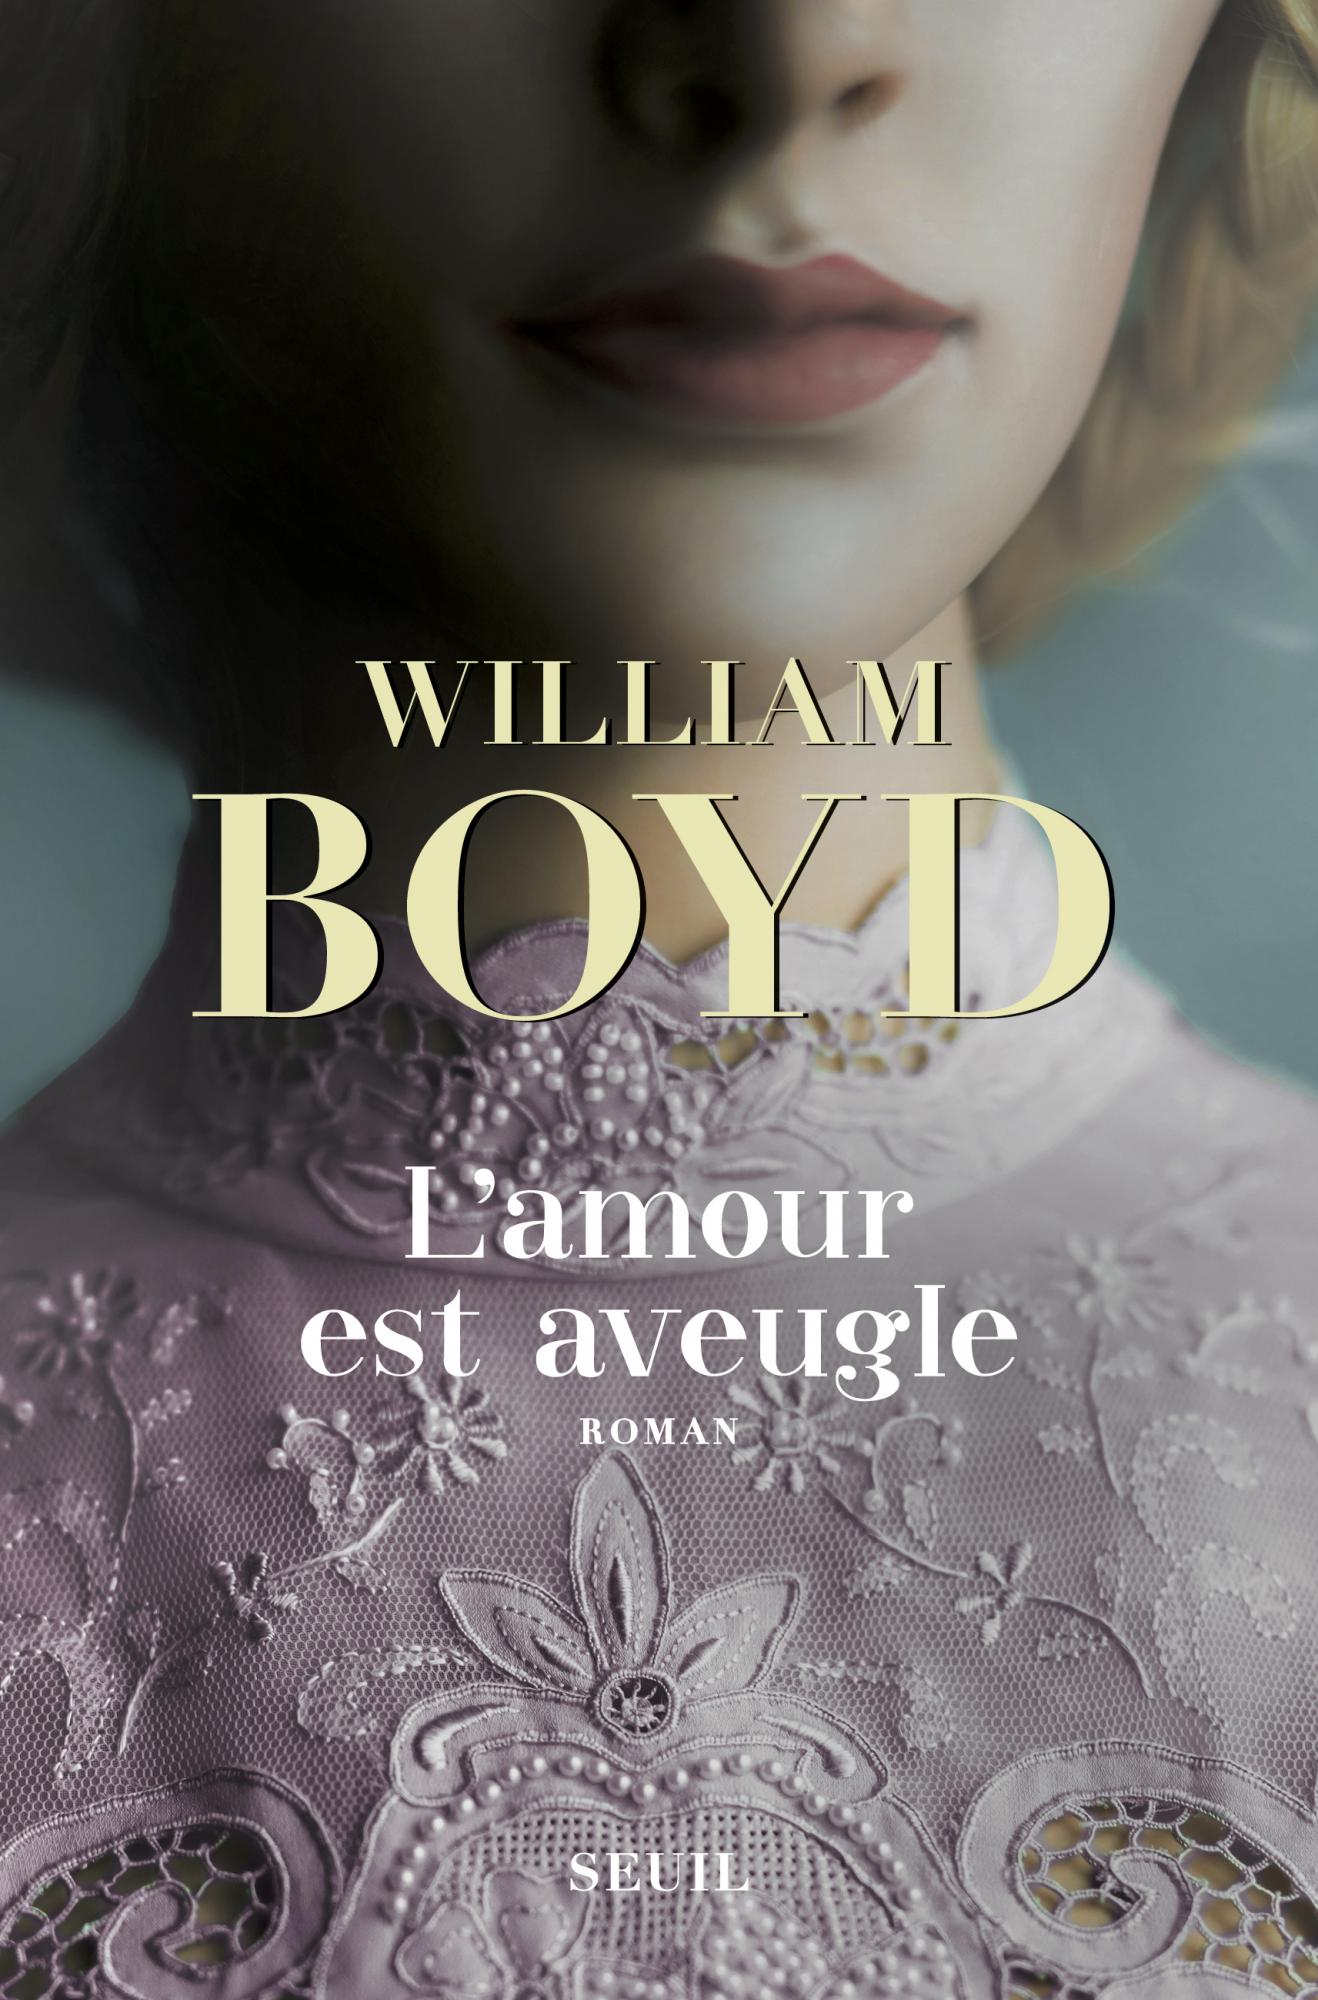 lamourestaveugle williamboyd seuil